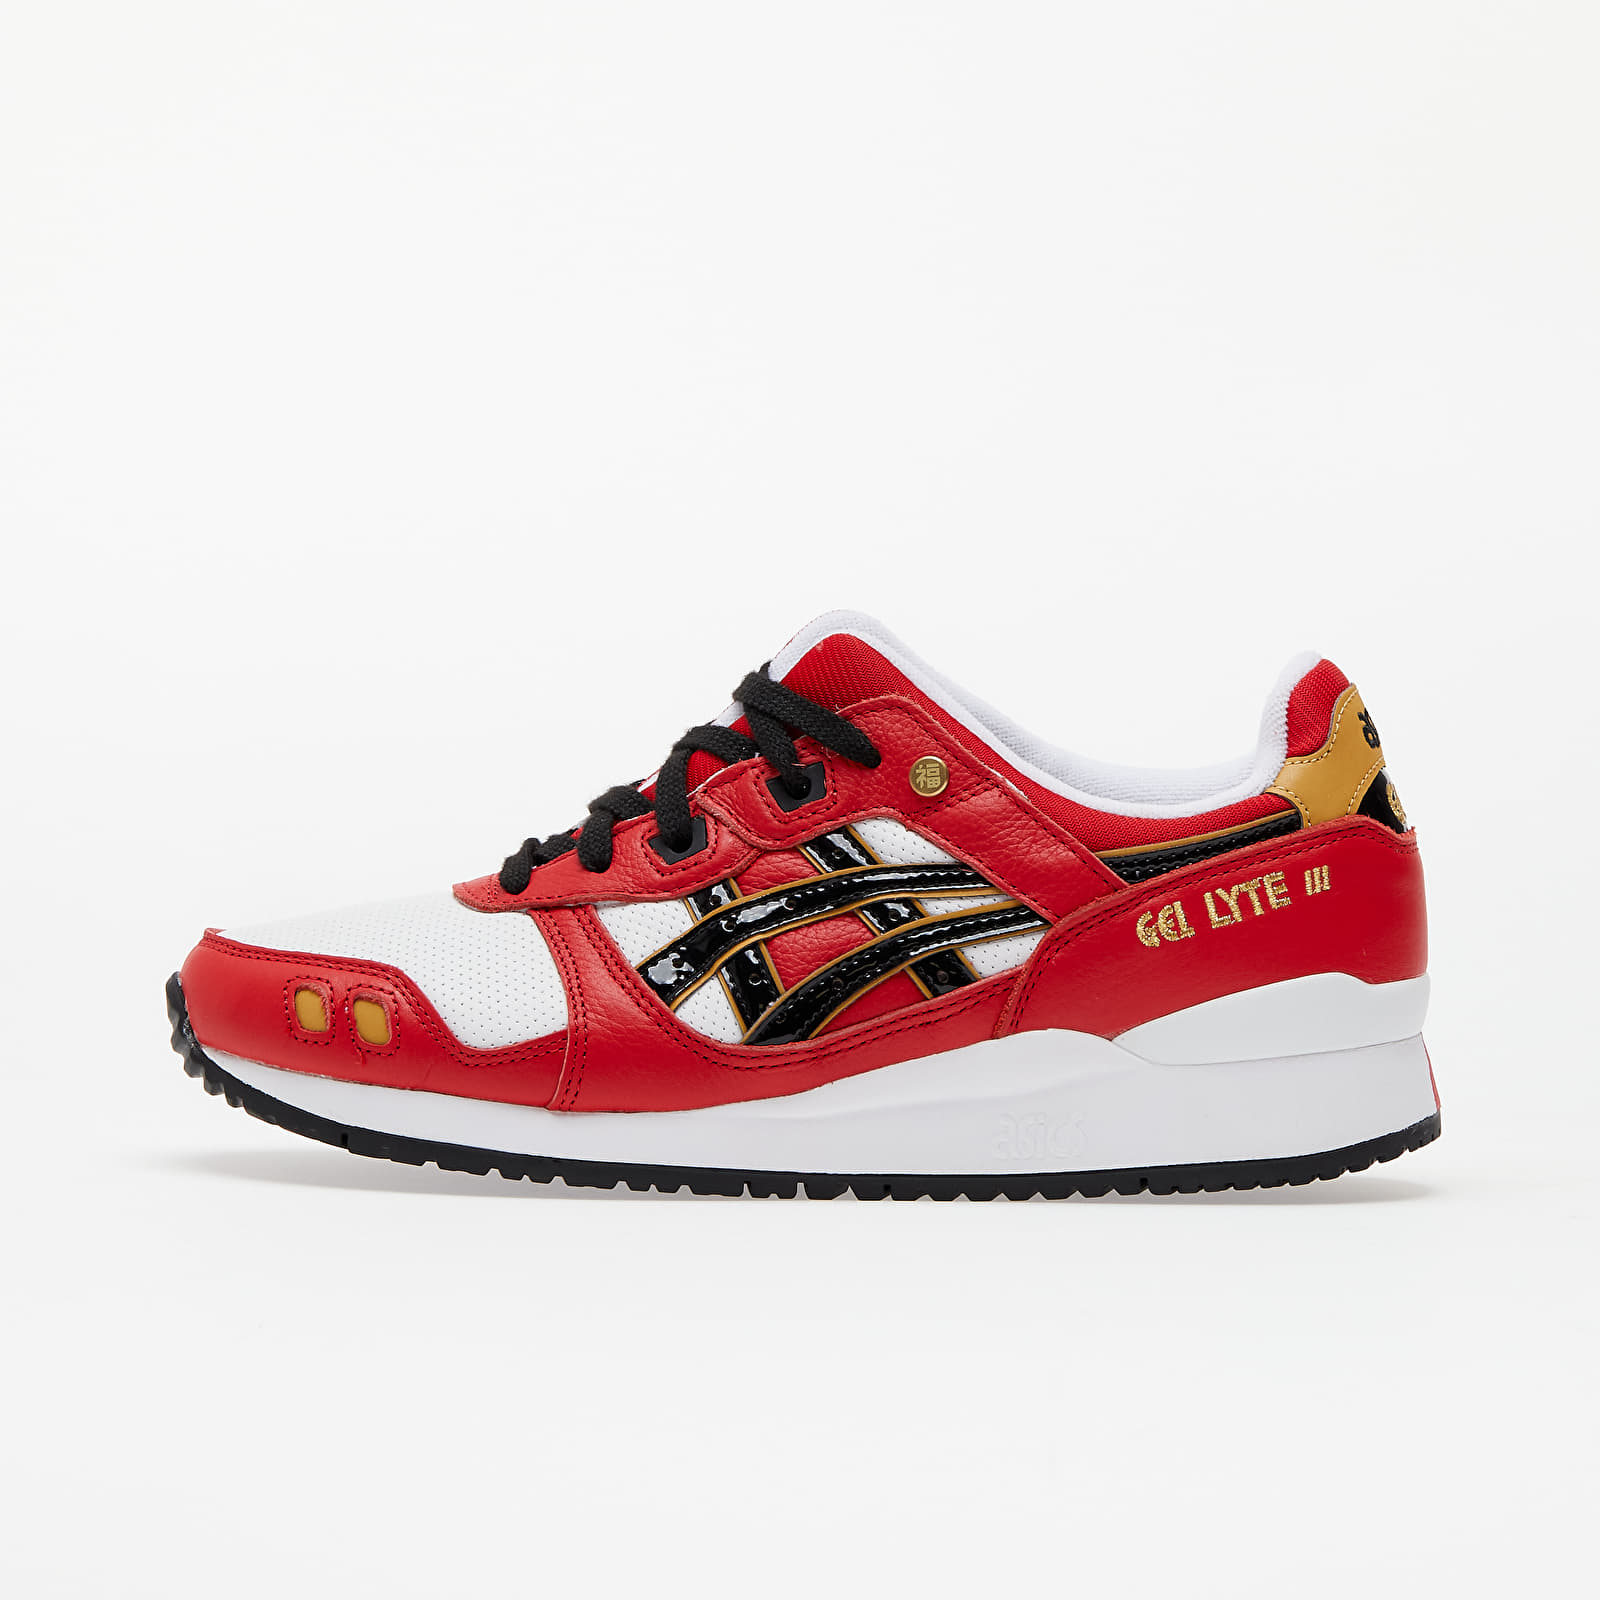 Asics Gel-Lyte III OG Classic Red/ Black EUR 43.5